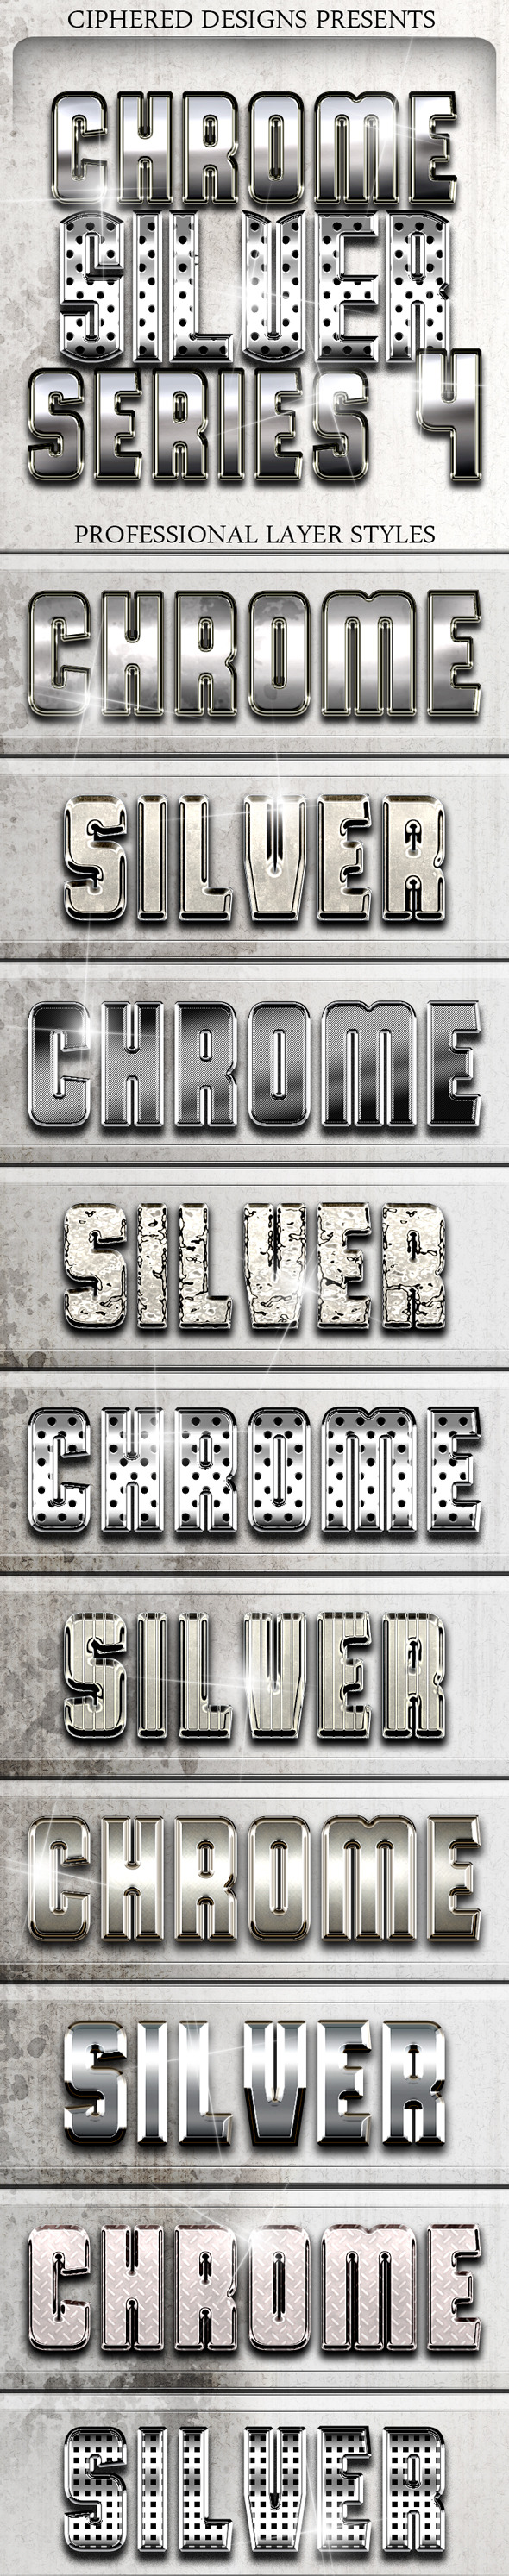 Chrome & Silver Series 4 - Pro Text Effects - Text Effects Styles